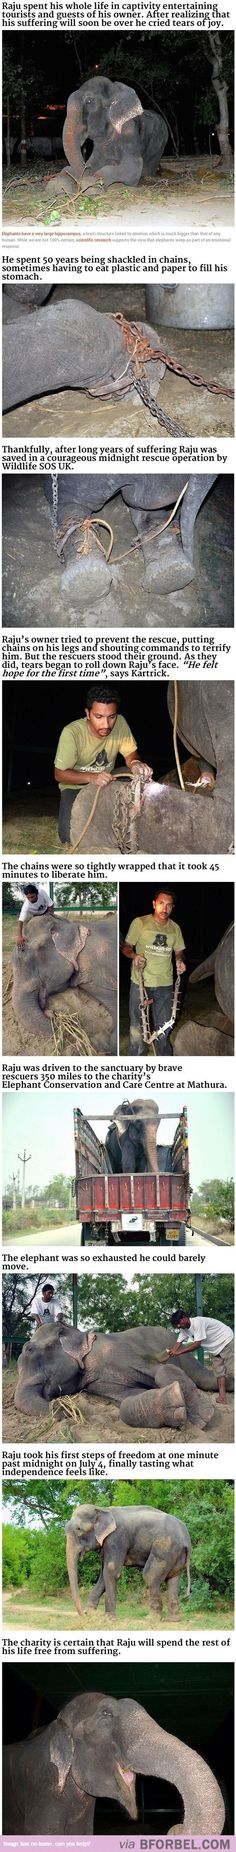 Aww Raju...Live free sweetheart!  Find comfort in life as best you can, and for what it's worth...I'm sorry humans had to be so cruel to you!  We're not all like that, I promise!!!  <3